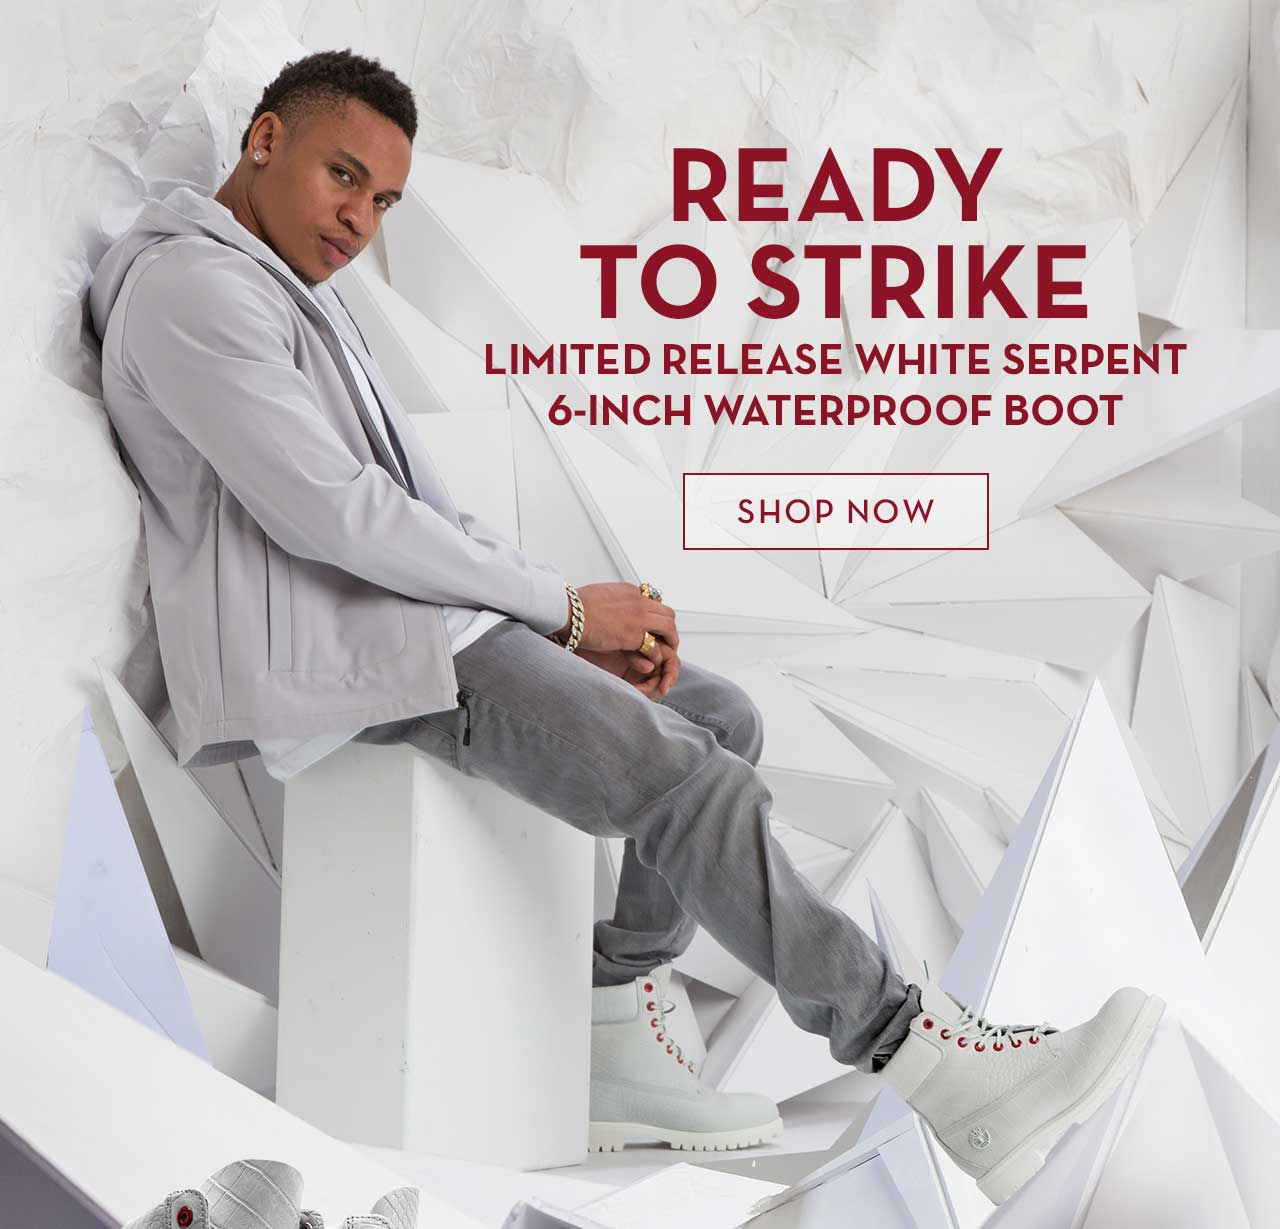 Ready To Strike Limited Release White Serpent 6-Inch Waterproof Boot Shop Now